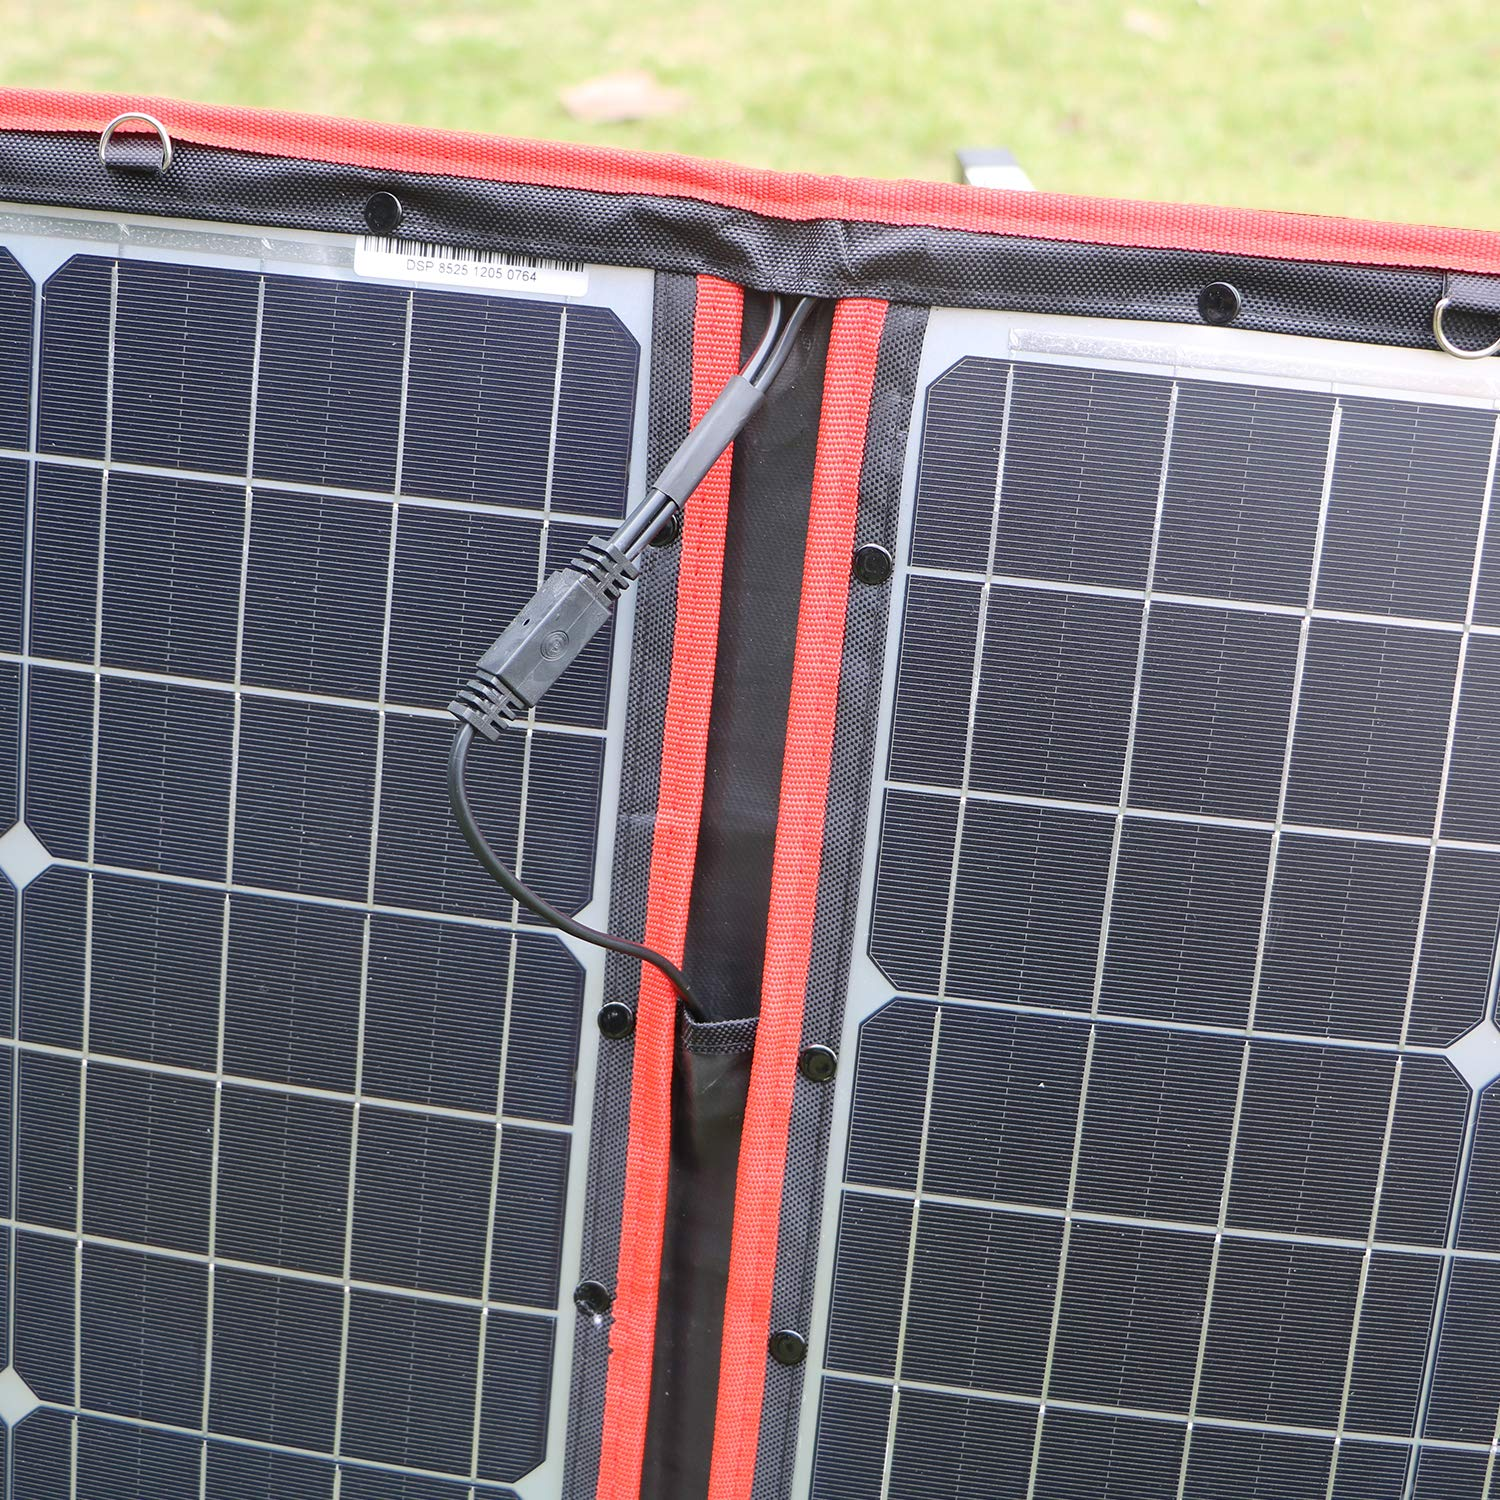 DOKIO 100 Watts 12 Volts Monocrystalline Foldable Solar Panel with Charge Controller by DOKIO (Image #9)